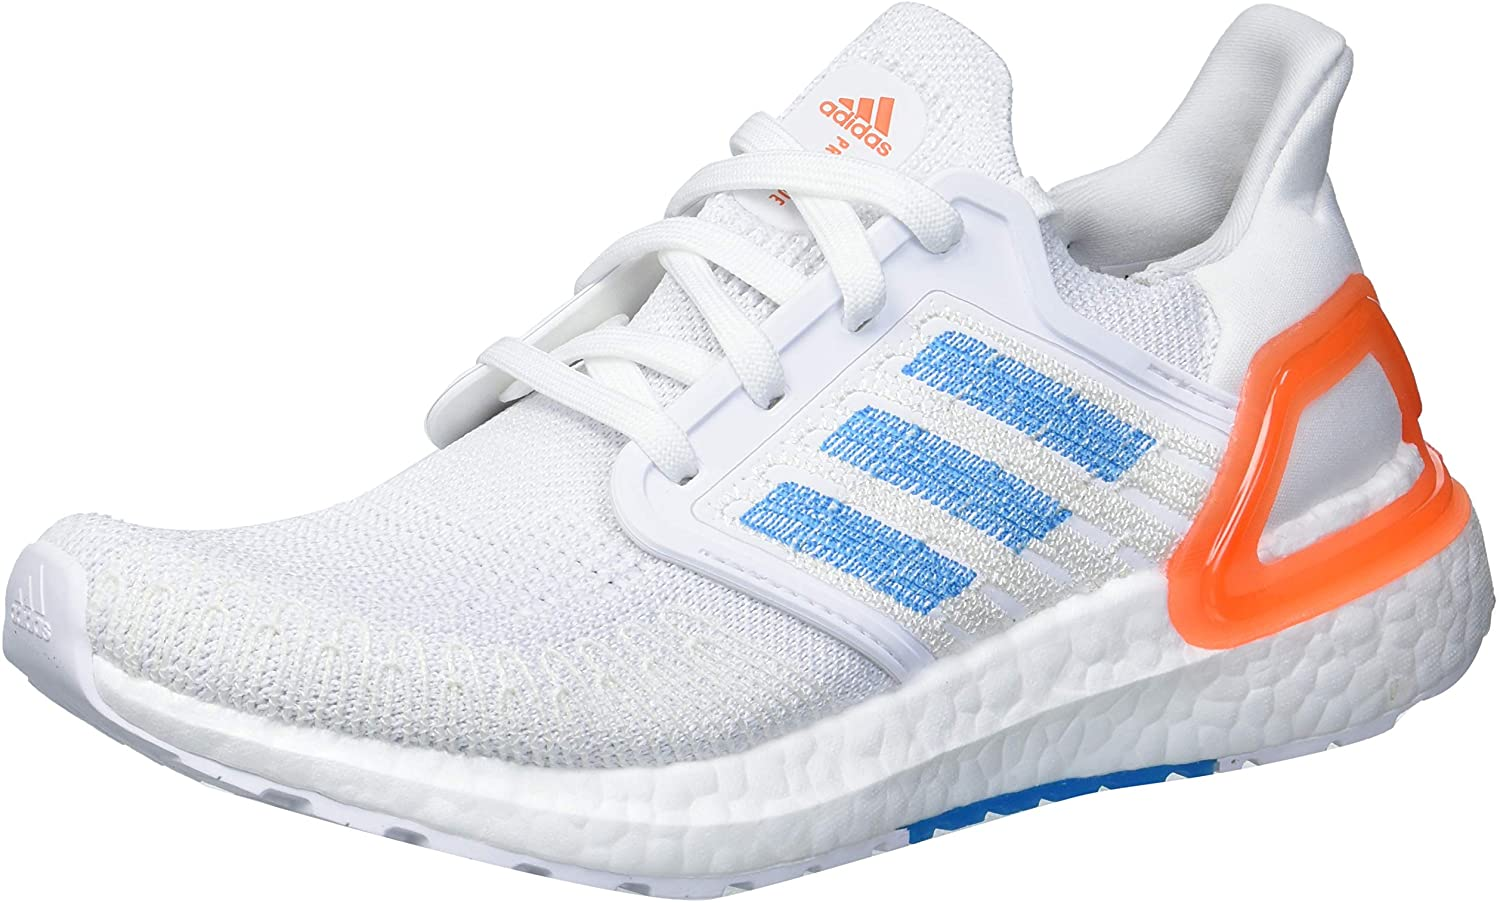 Amazon.com: adidas Ultraboost 20 Primeblue - Zapatillas de ...